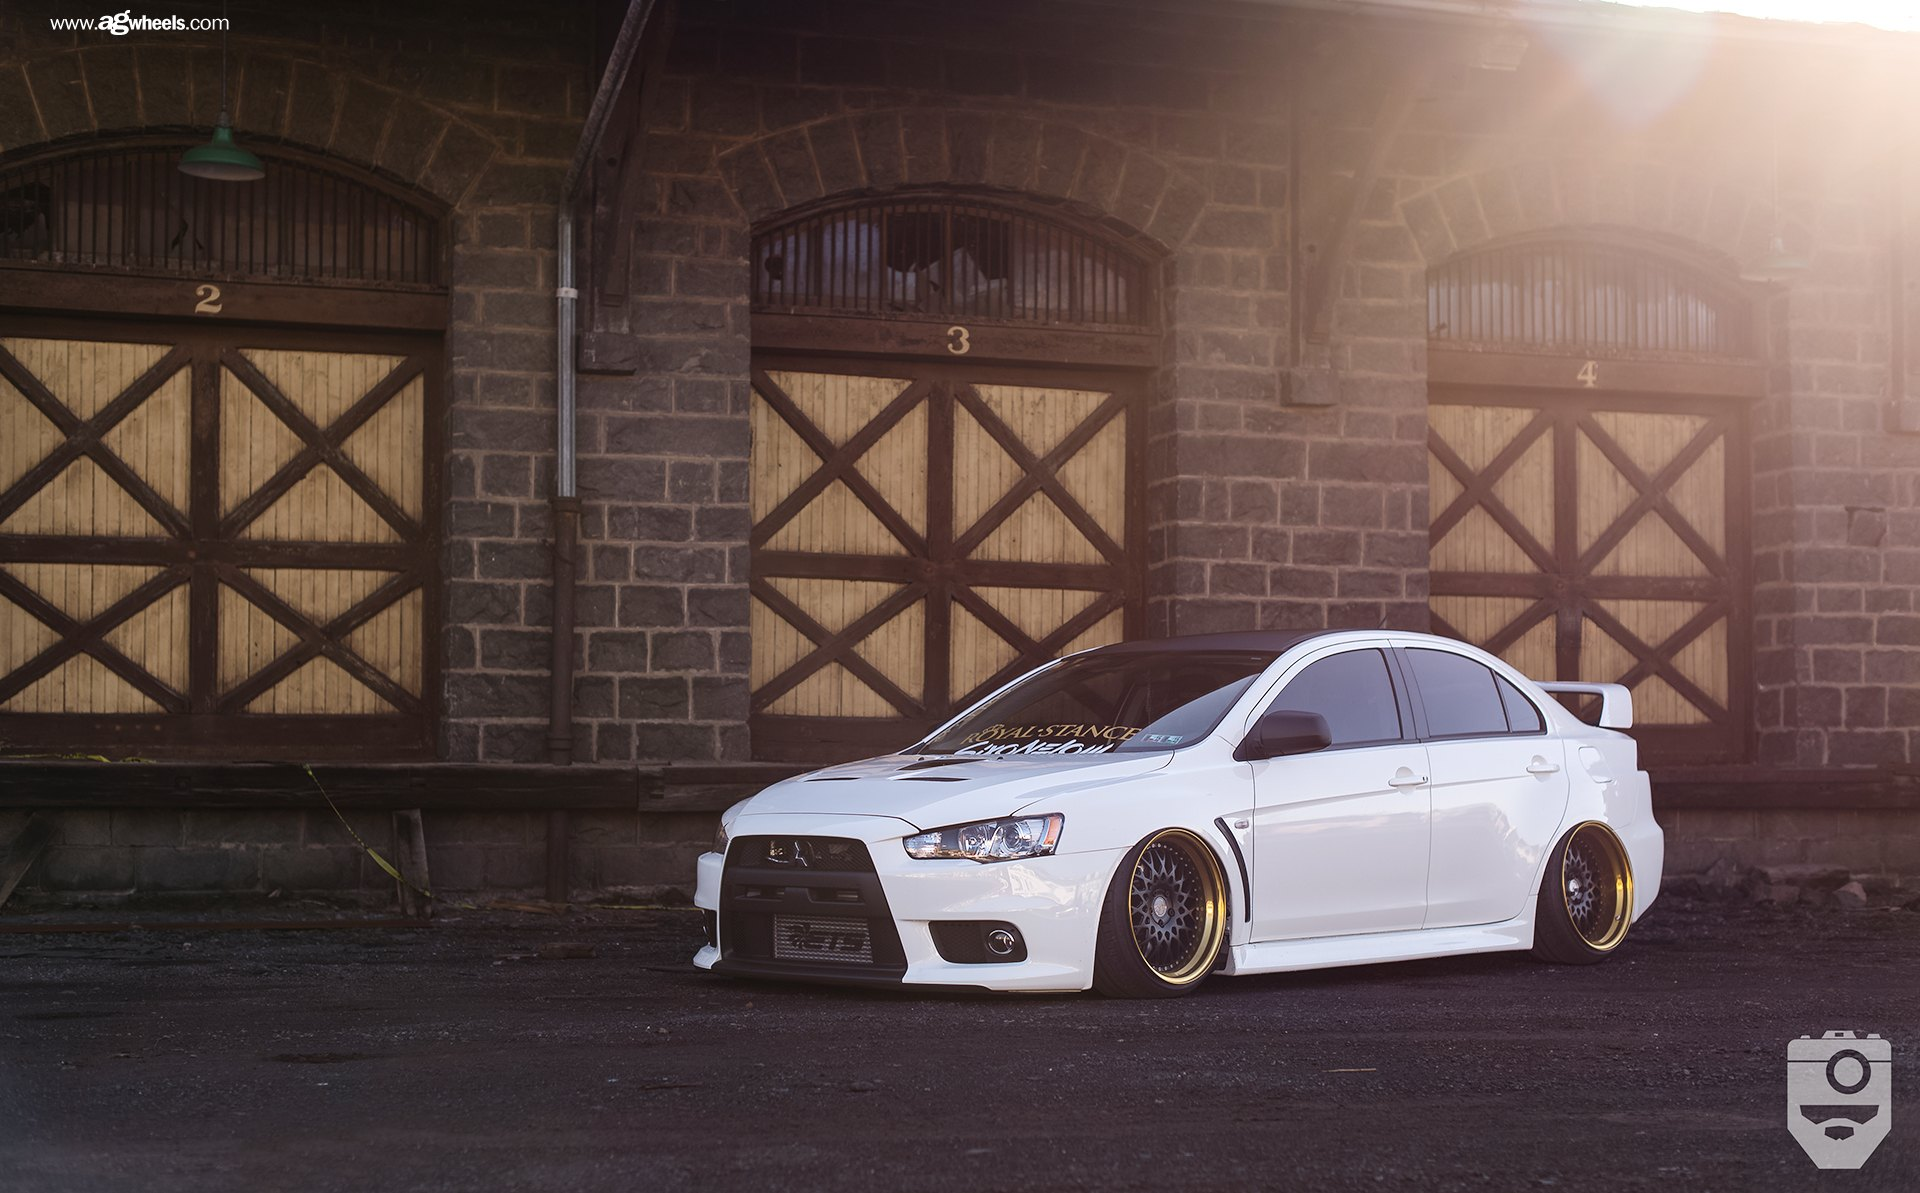 Stance Is Everything: White Mitsubishi Evolution with Custom